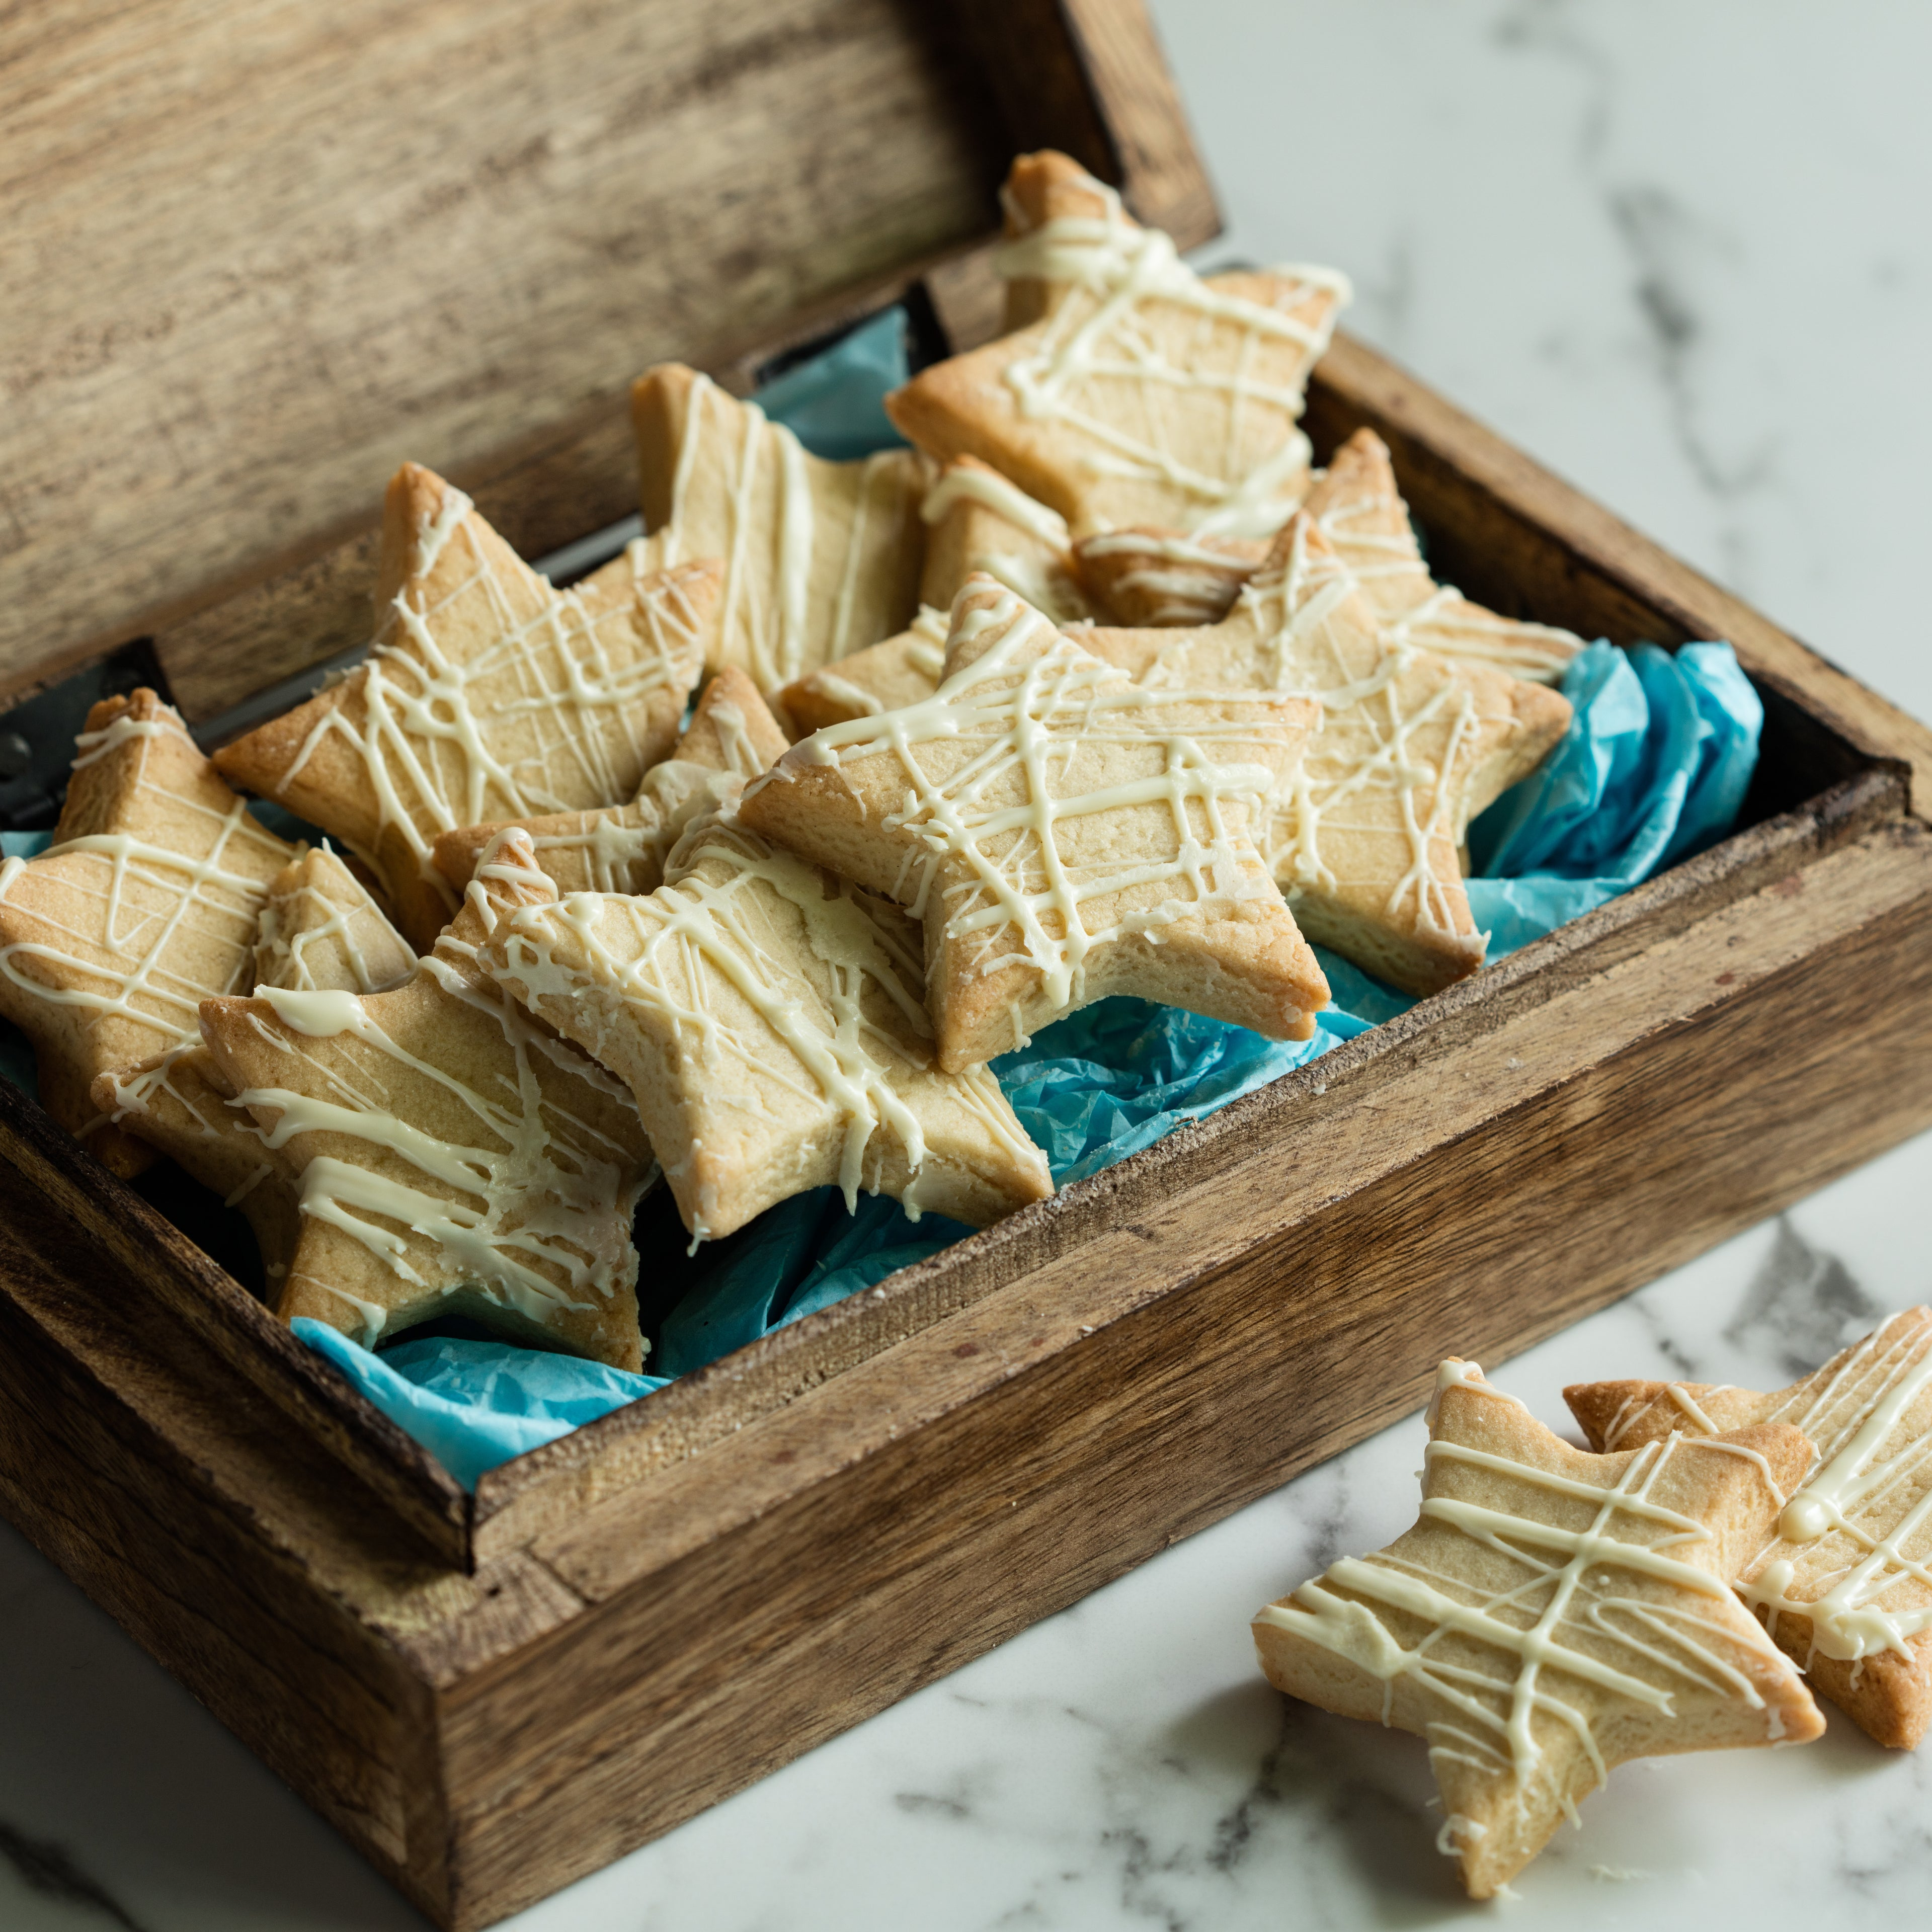 Star shaped biscuits inside a wooden box with blue tissue paper